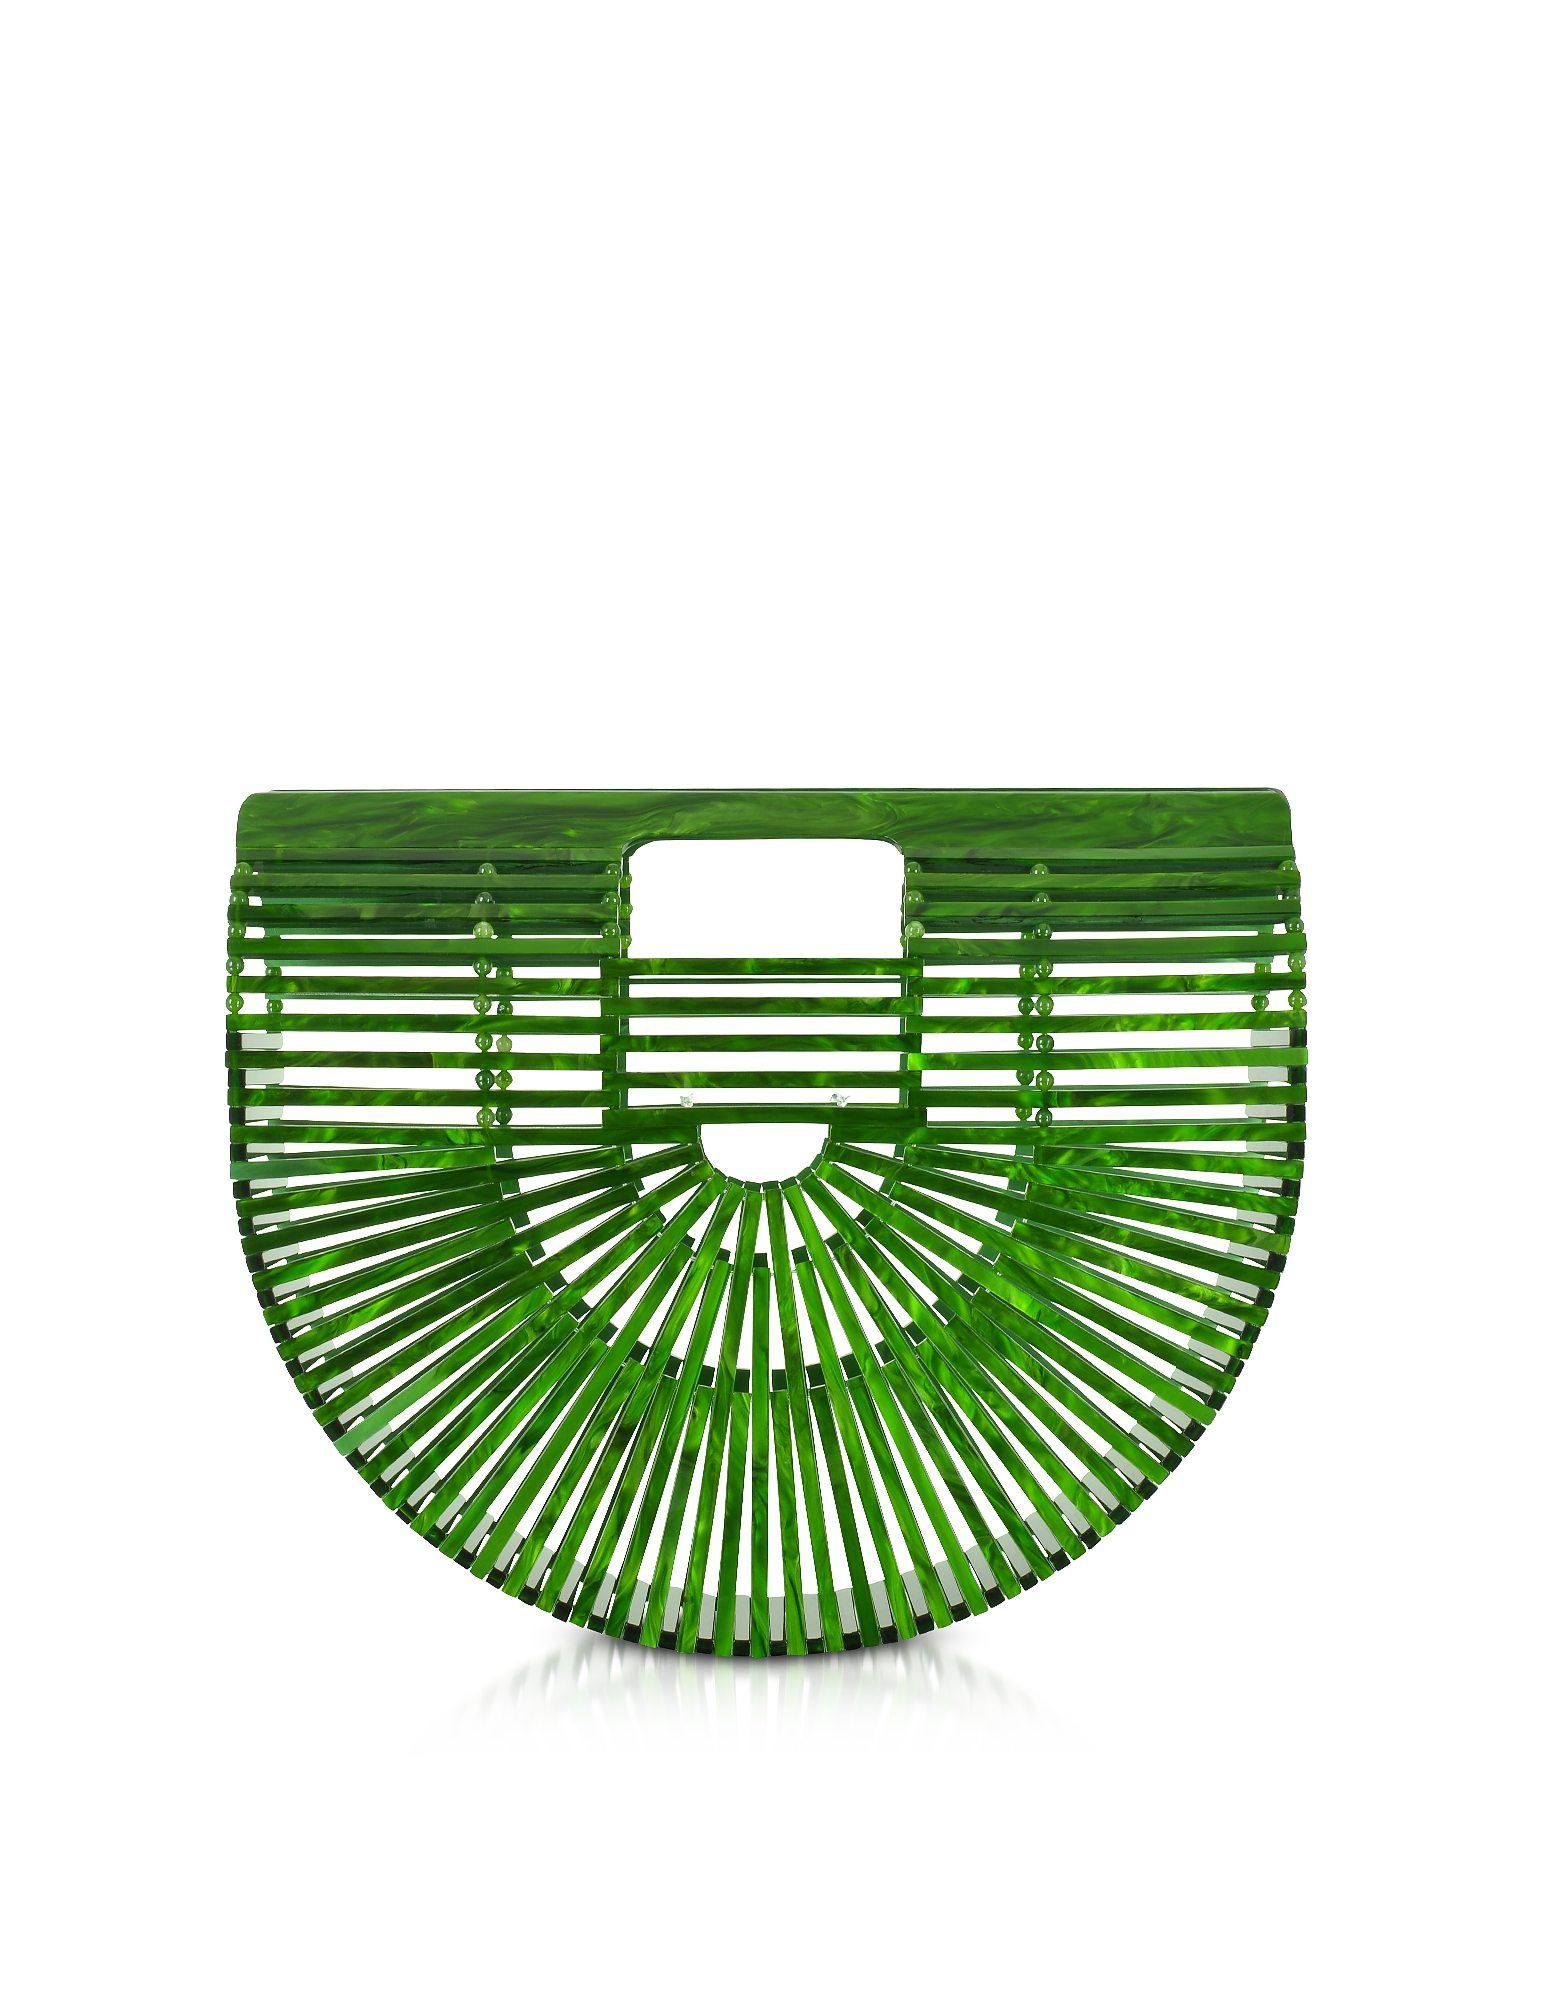 Cult Gaia Handbags, Malachite Acrylic Small Ark Bag